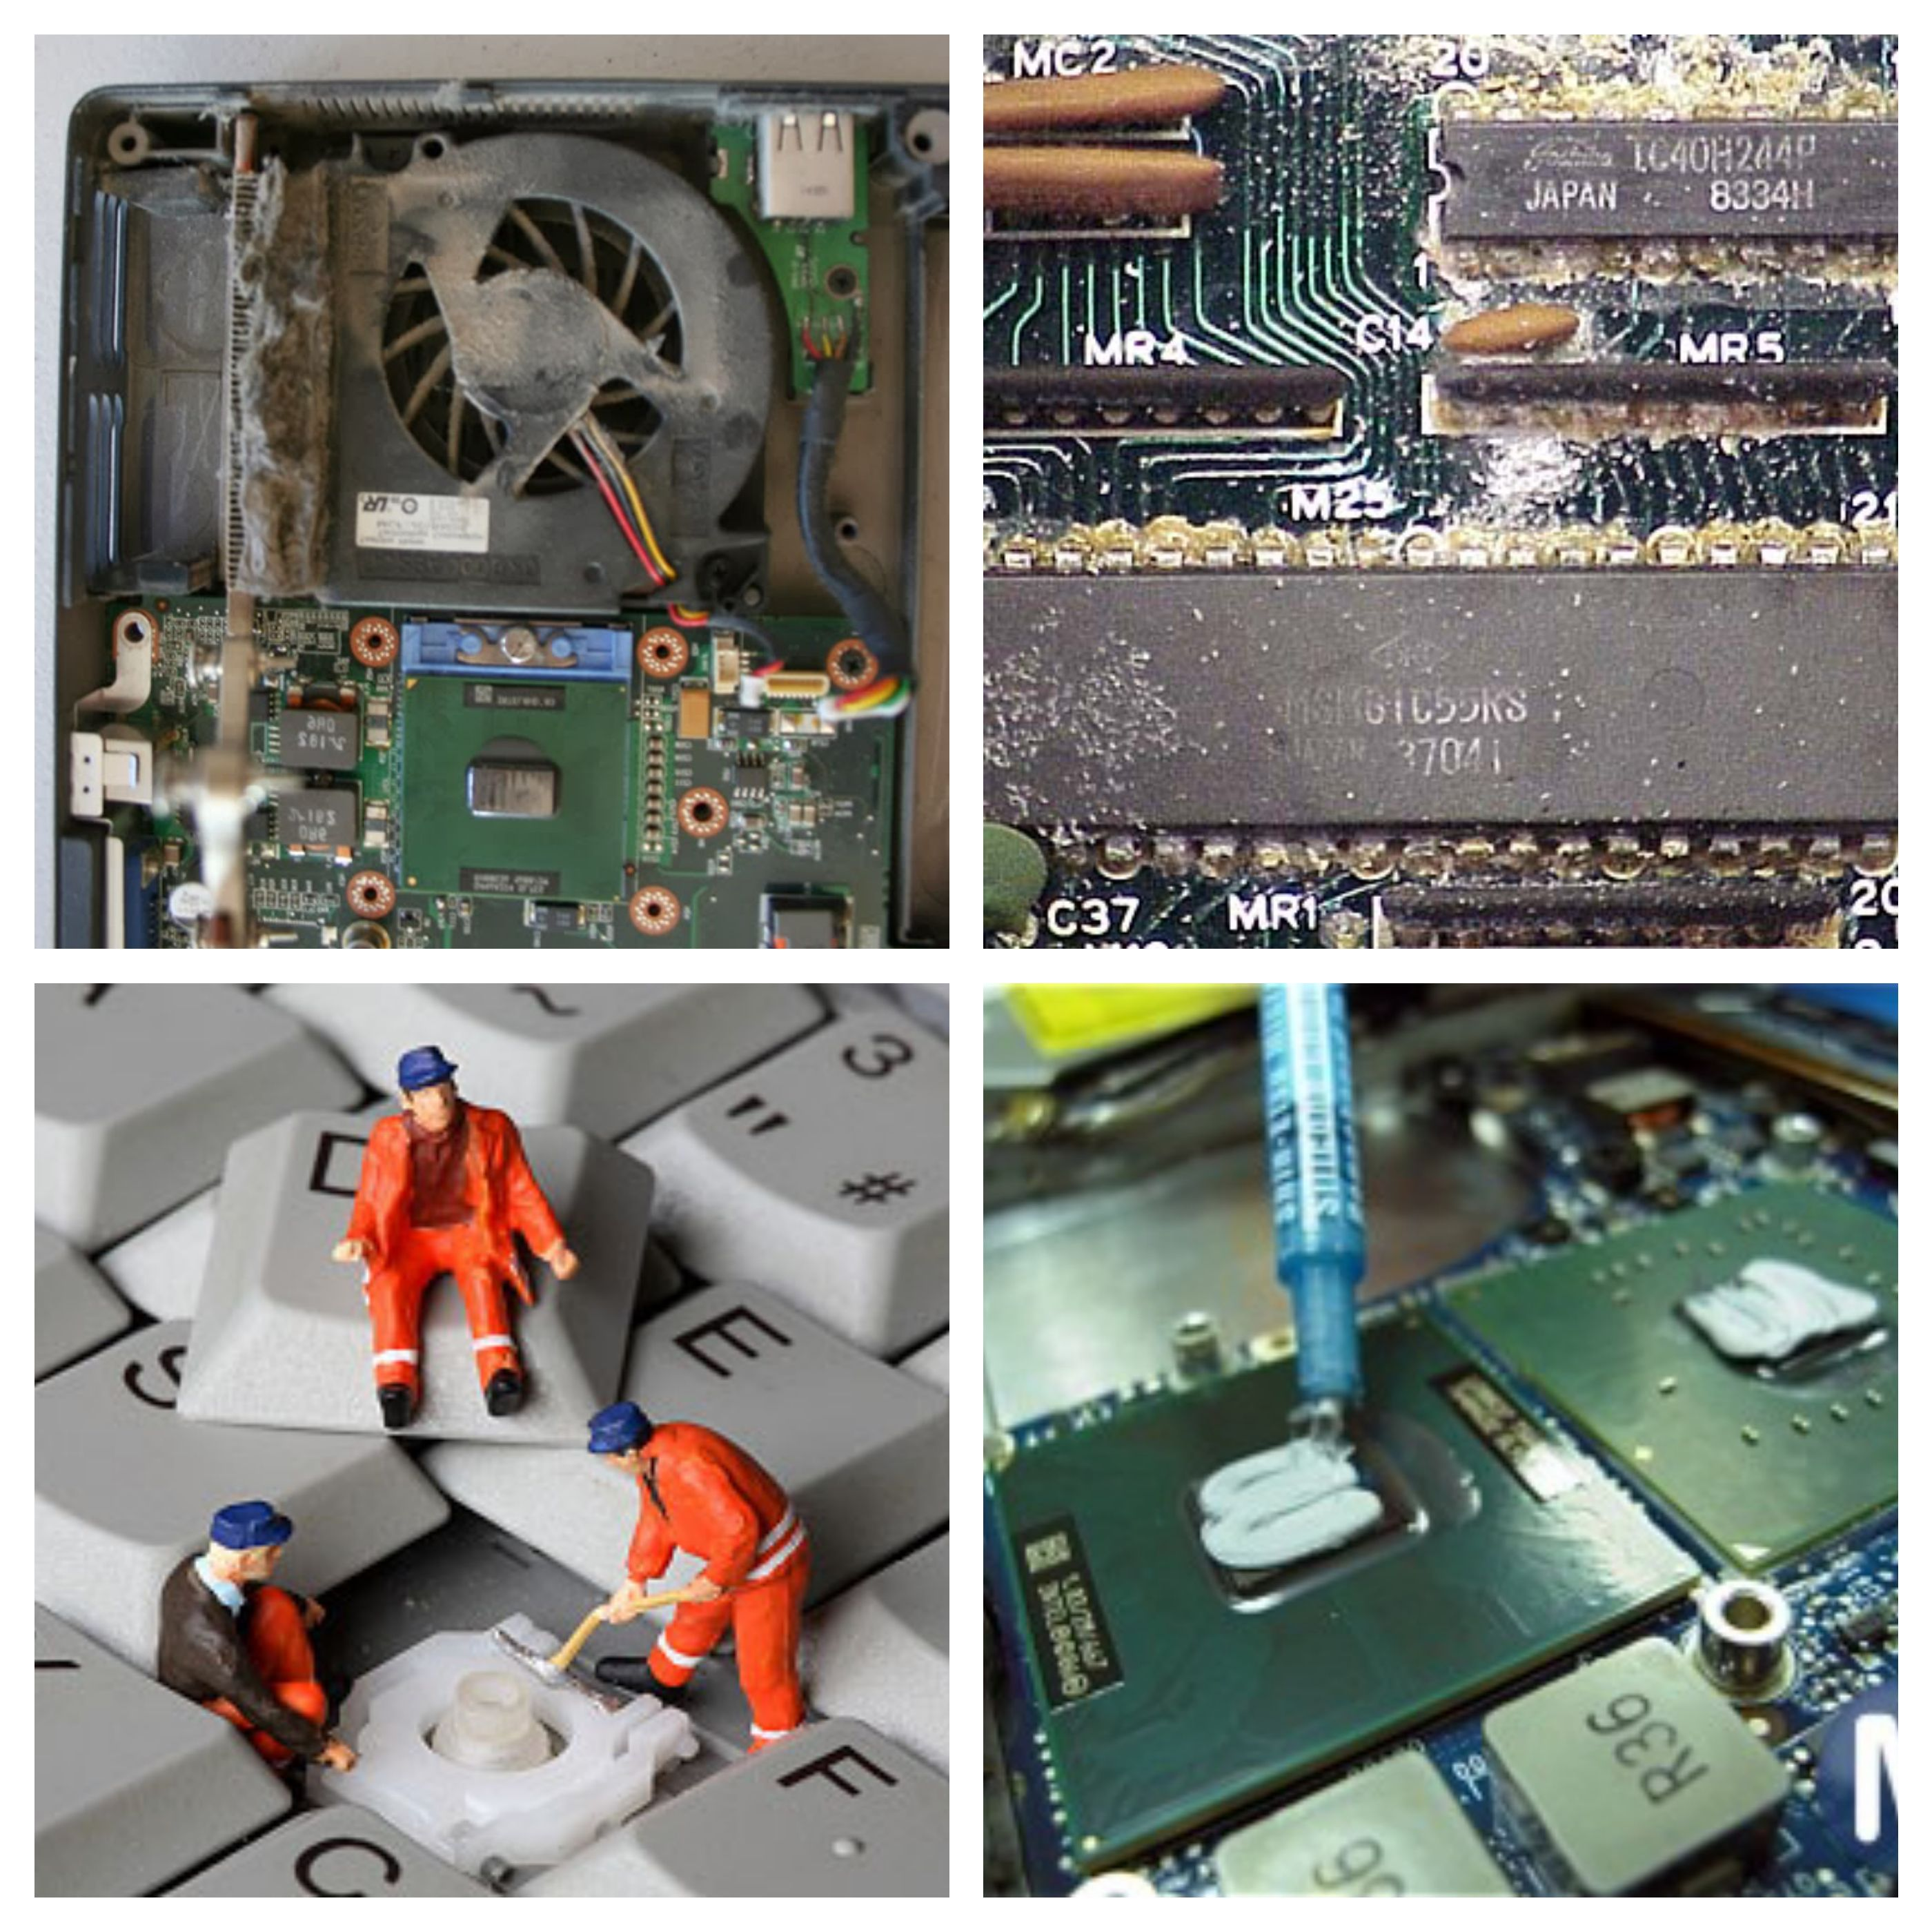 Laptop Overheating requires preventive maintenance